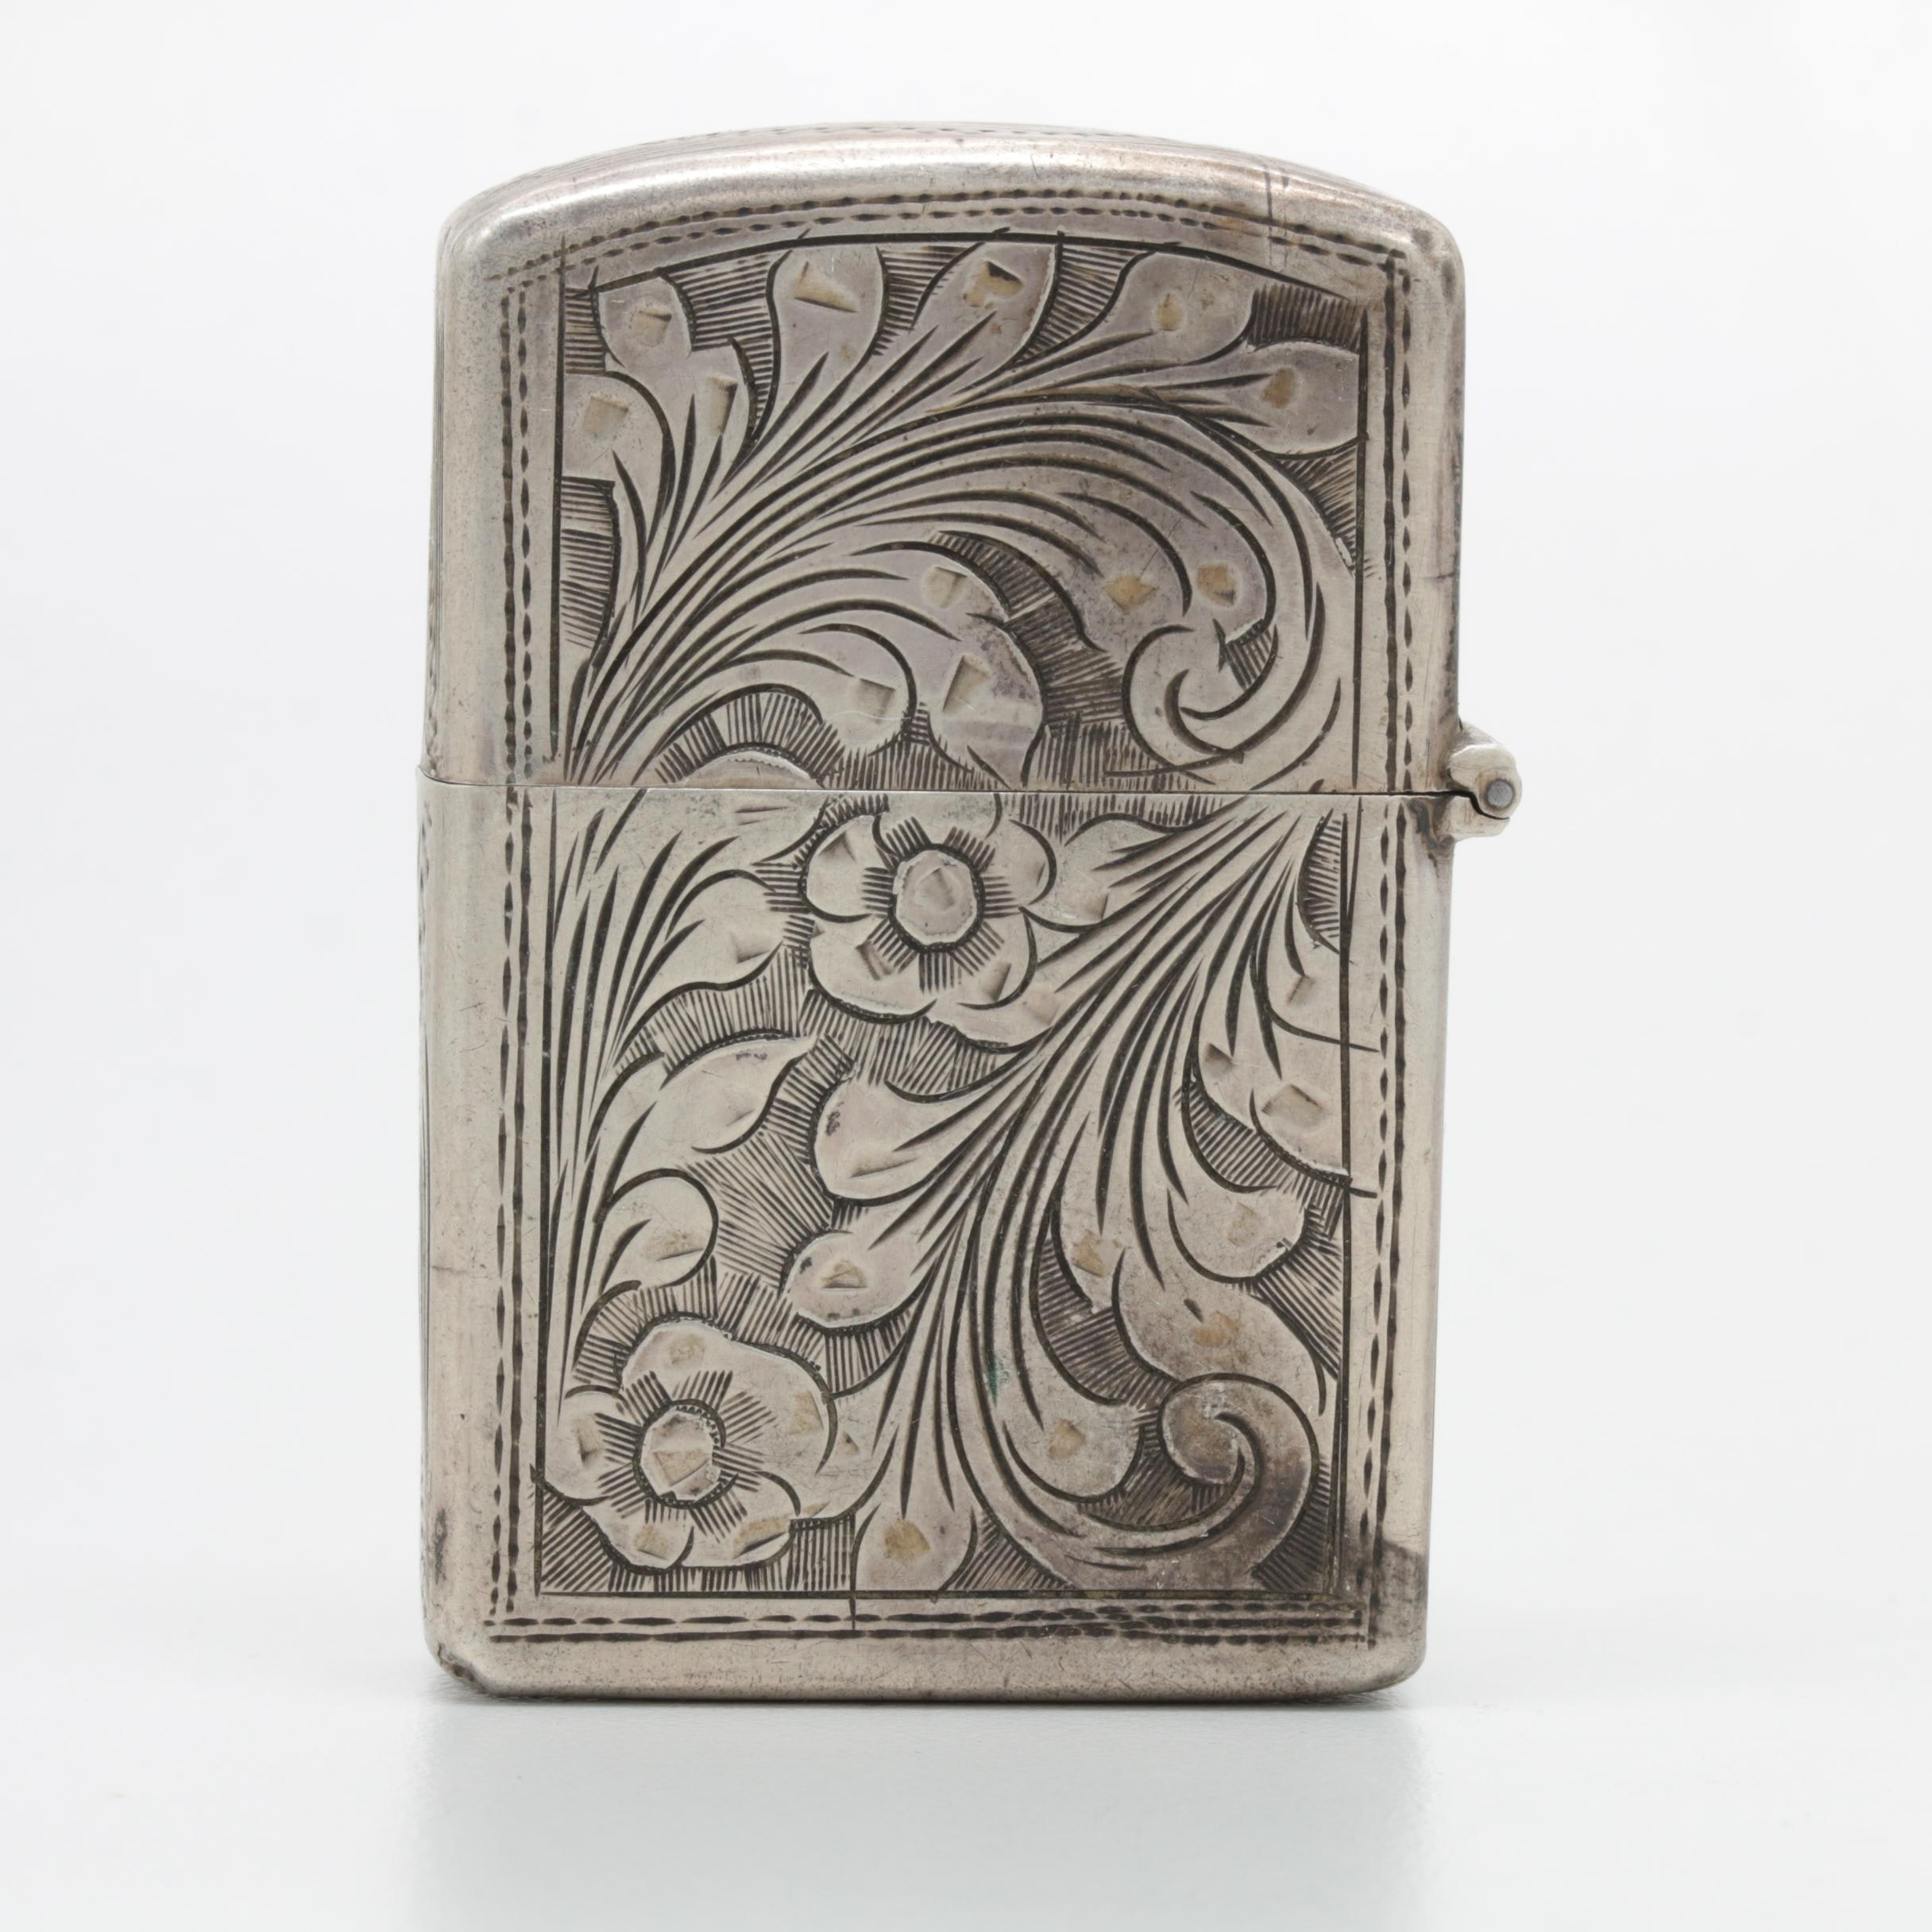 800 Silver Engraved Floral Motif Lighter